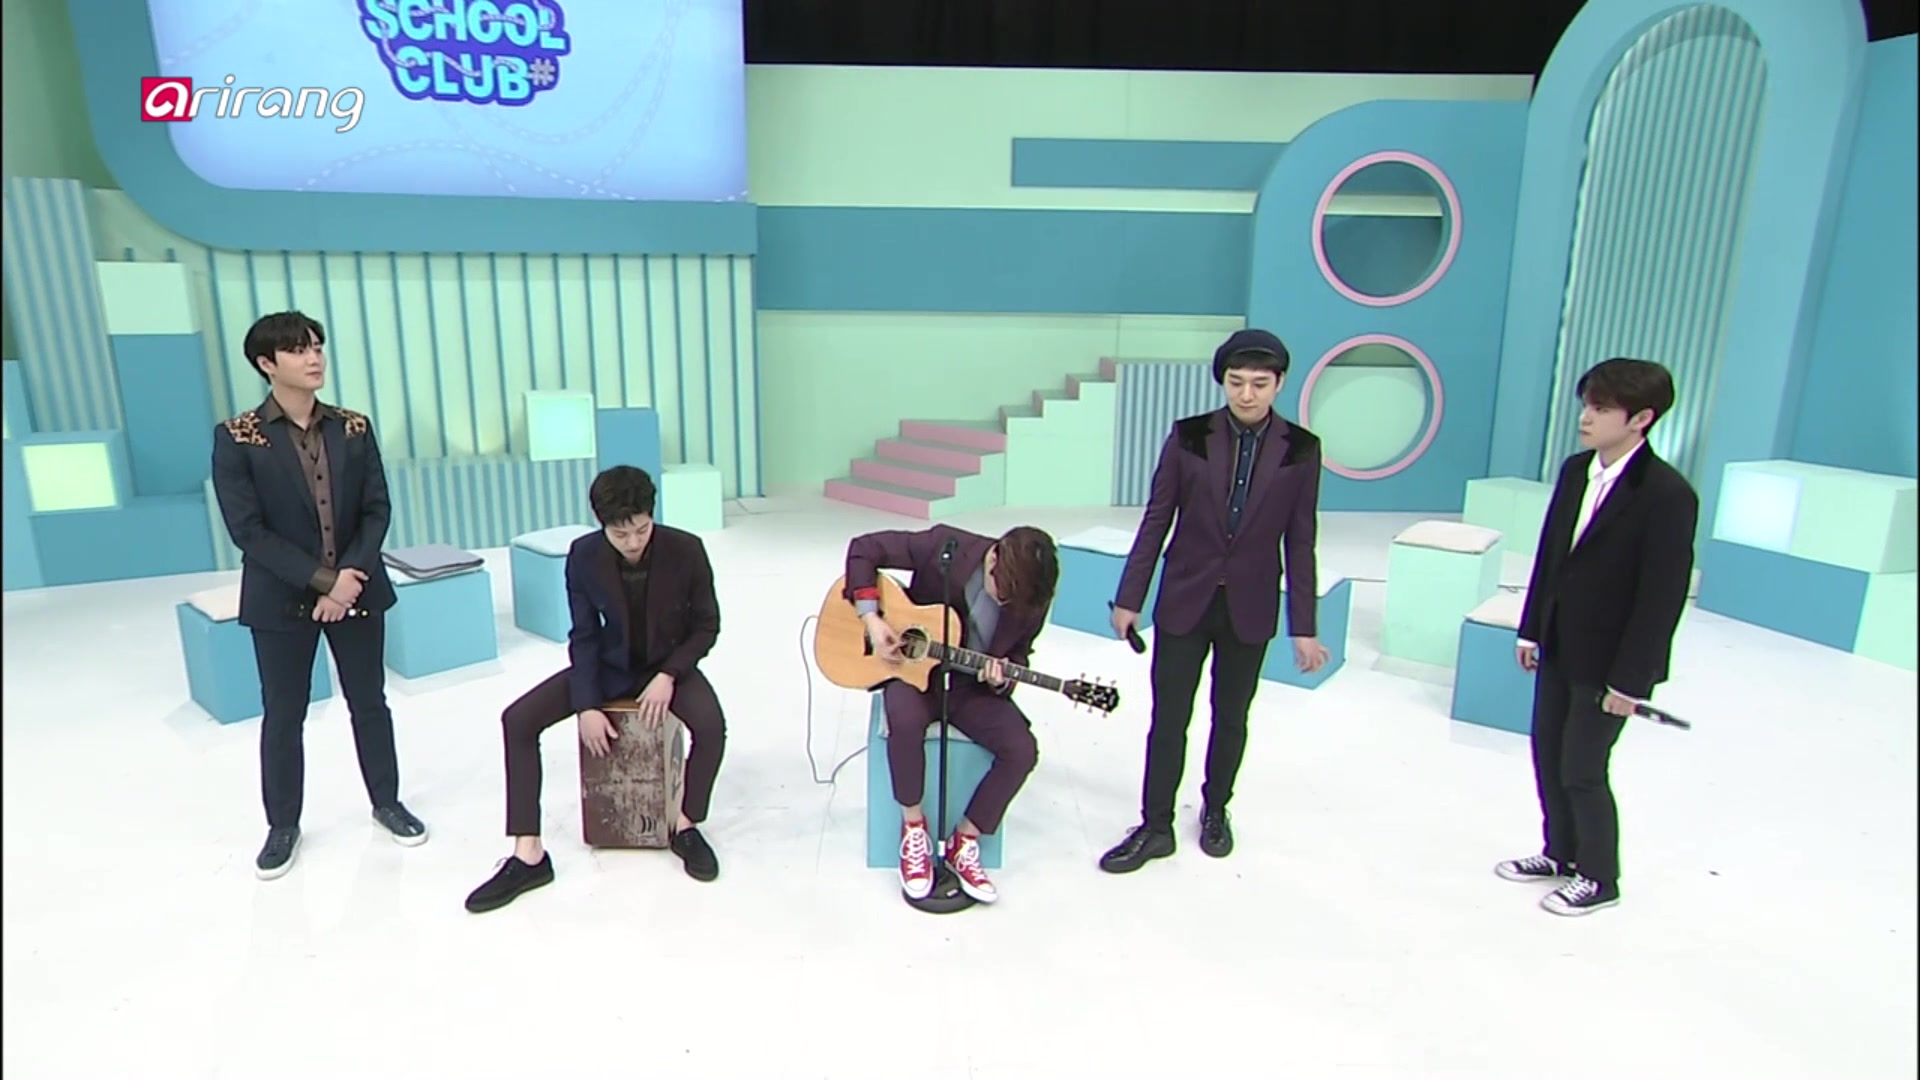 After School Club Episode 364: DAY6